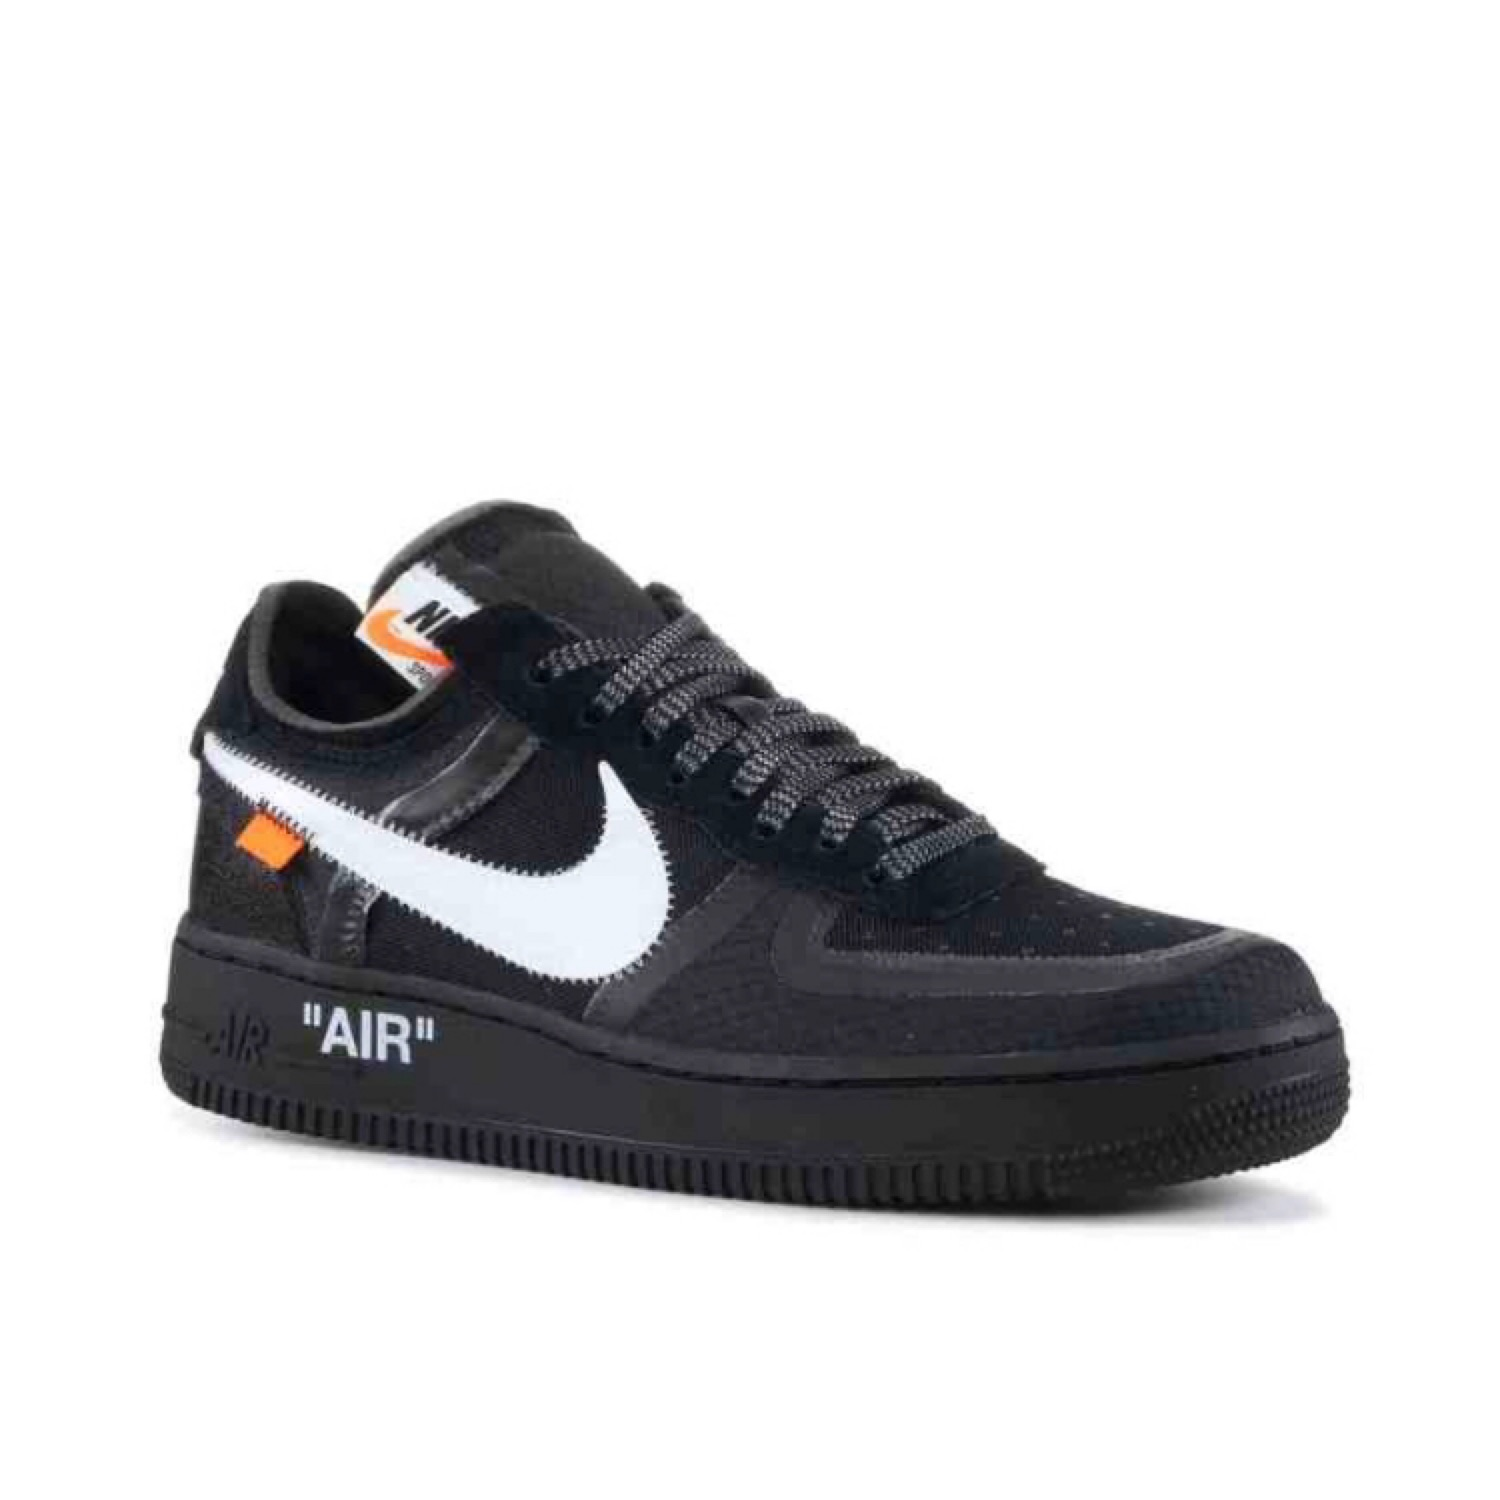 Nike air force one lack